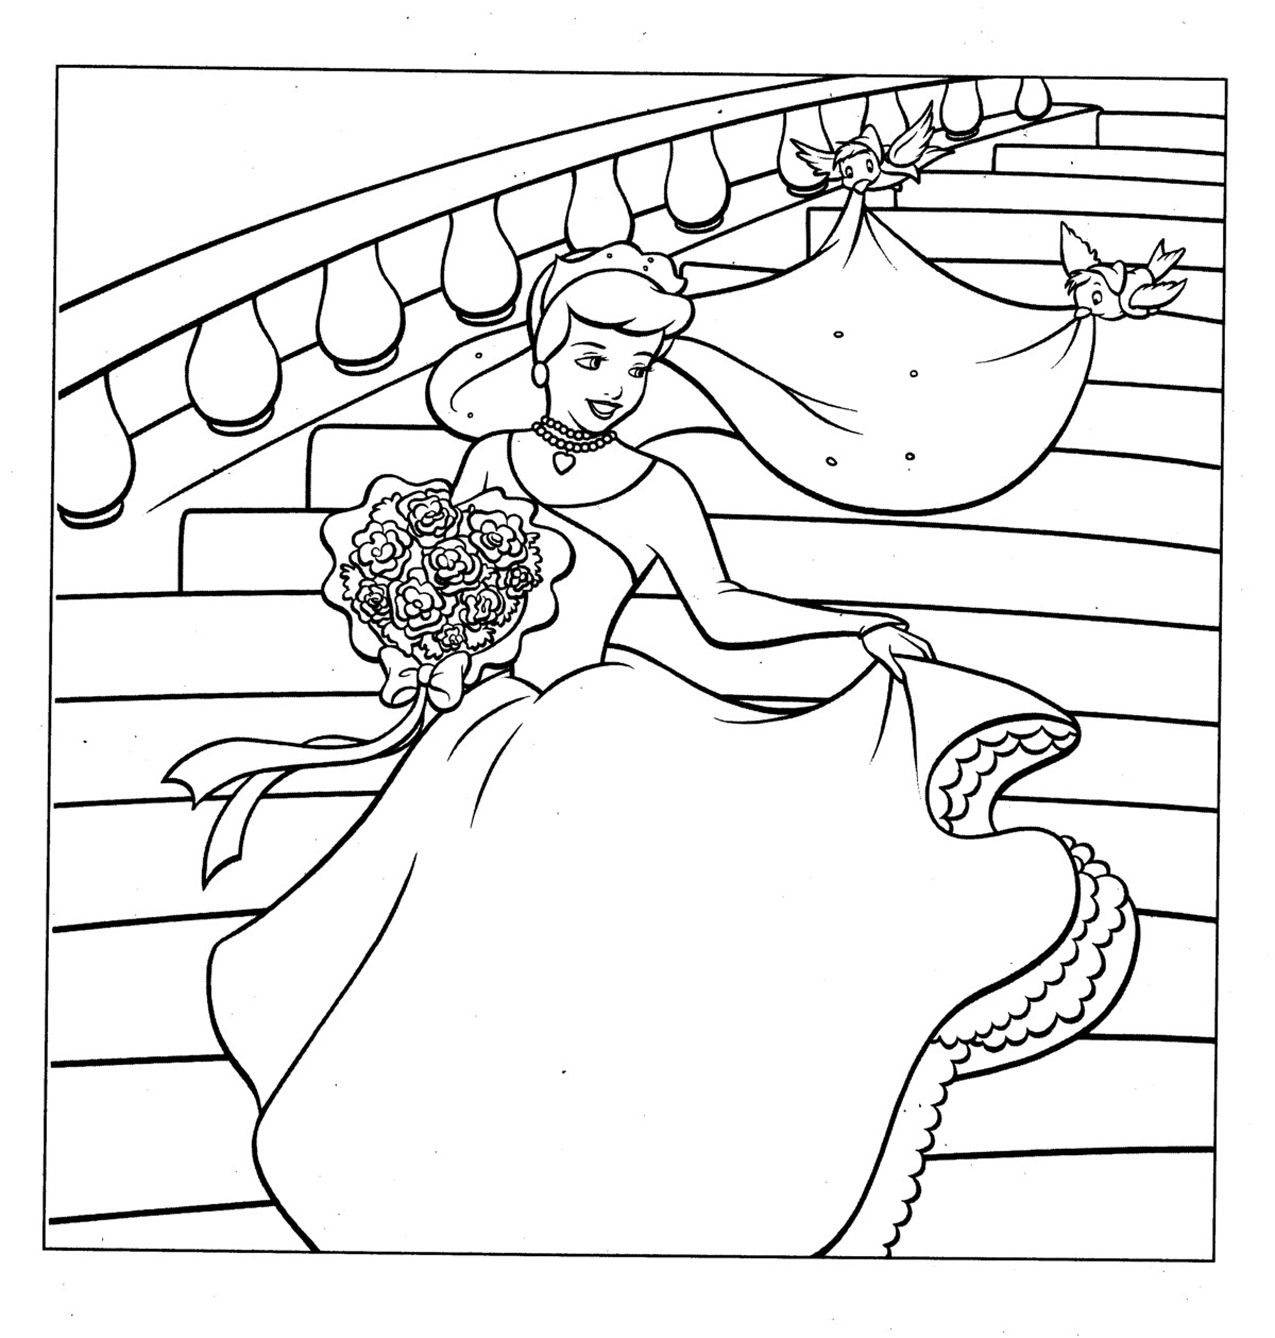 Wedding Dress Coloring Pages Kids Dress Coloring Pages Photos